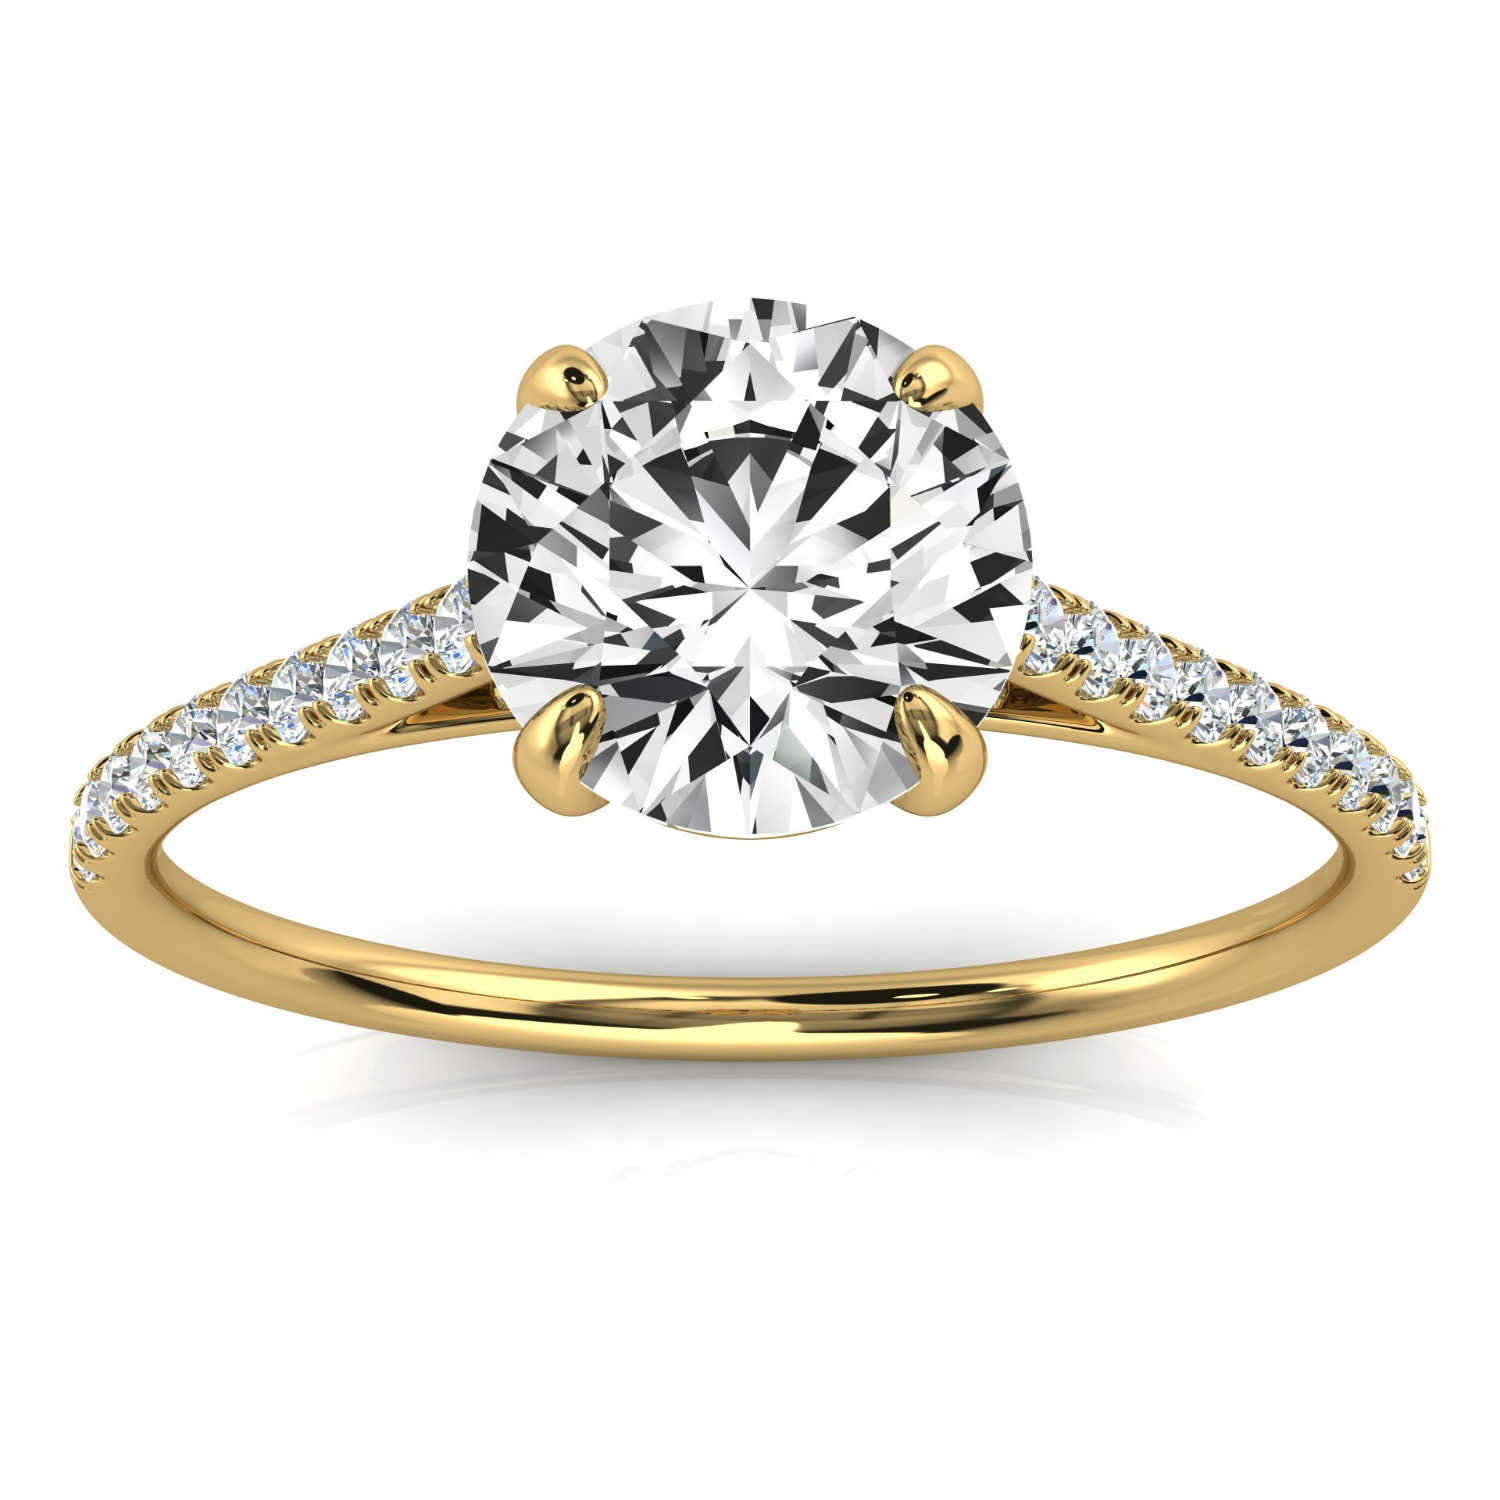 14K Yellow Gold Minimalist Yaelle Micro-Prong Diamond Ring ( 1/10 ct. tw)